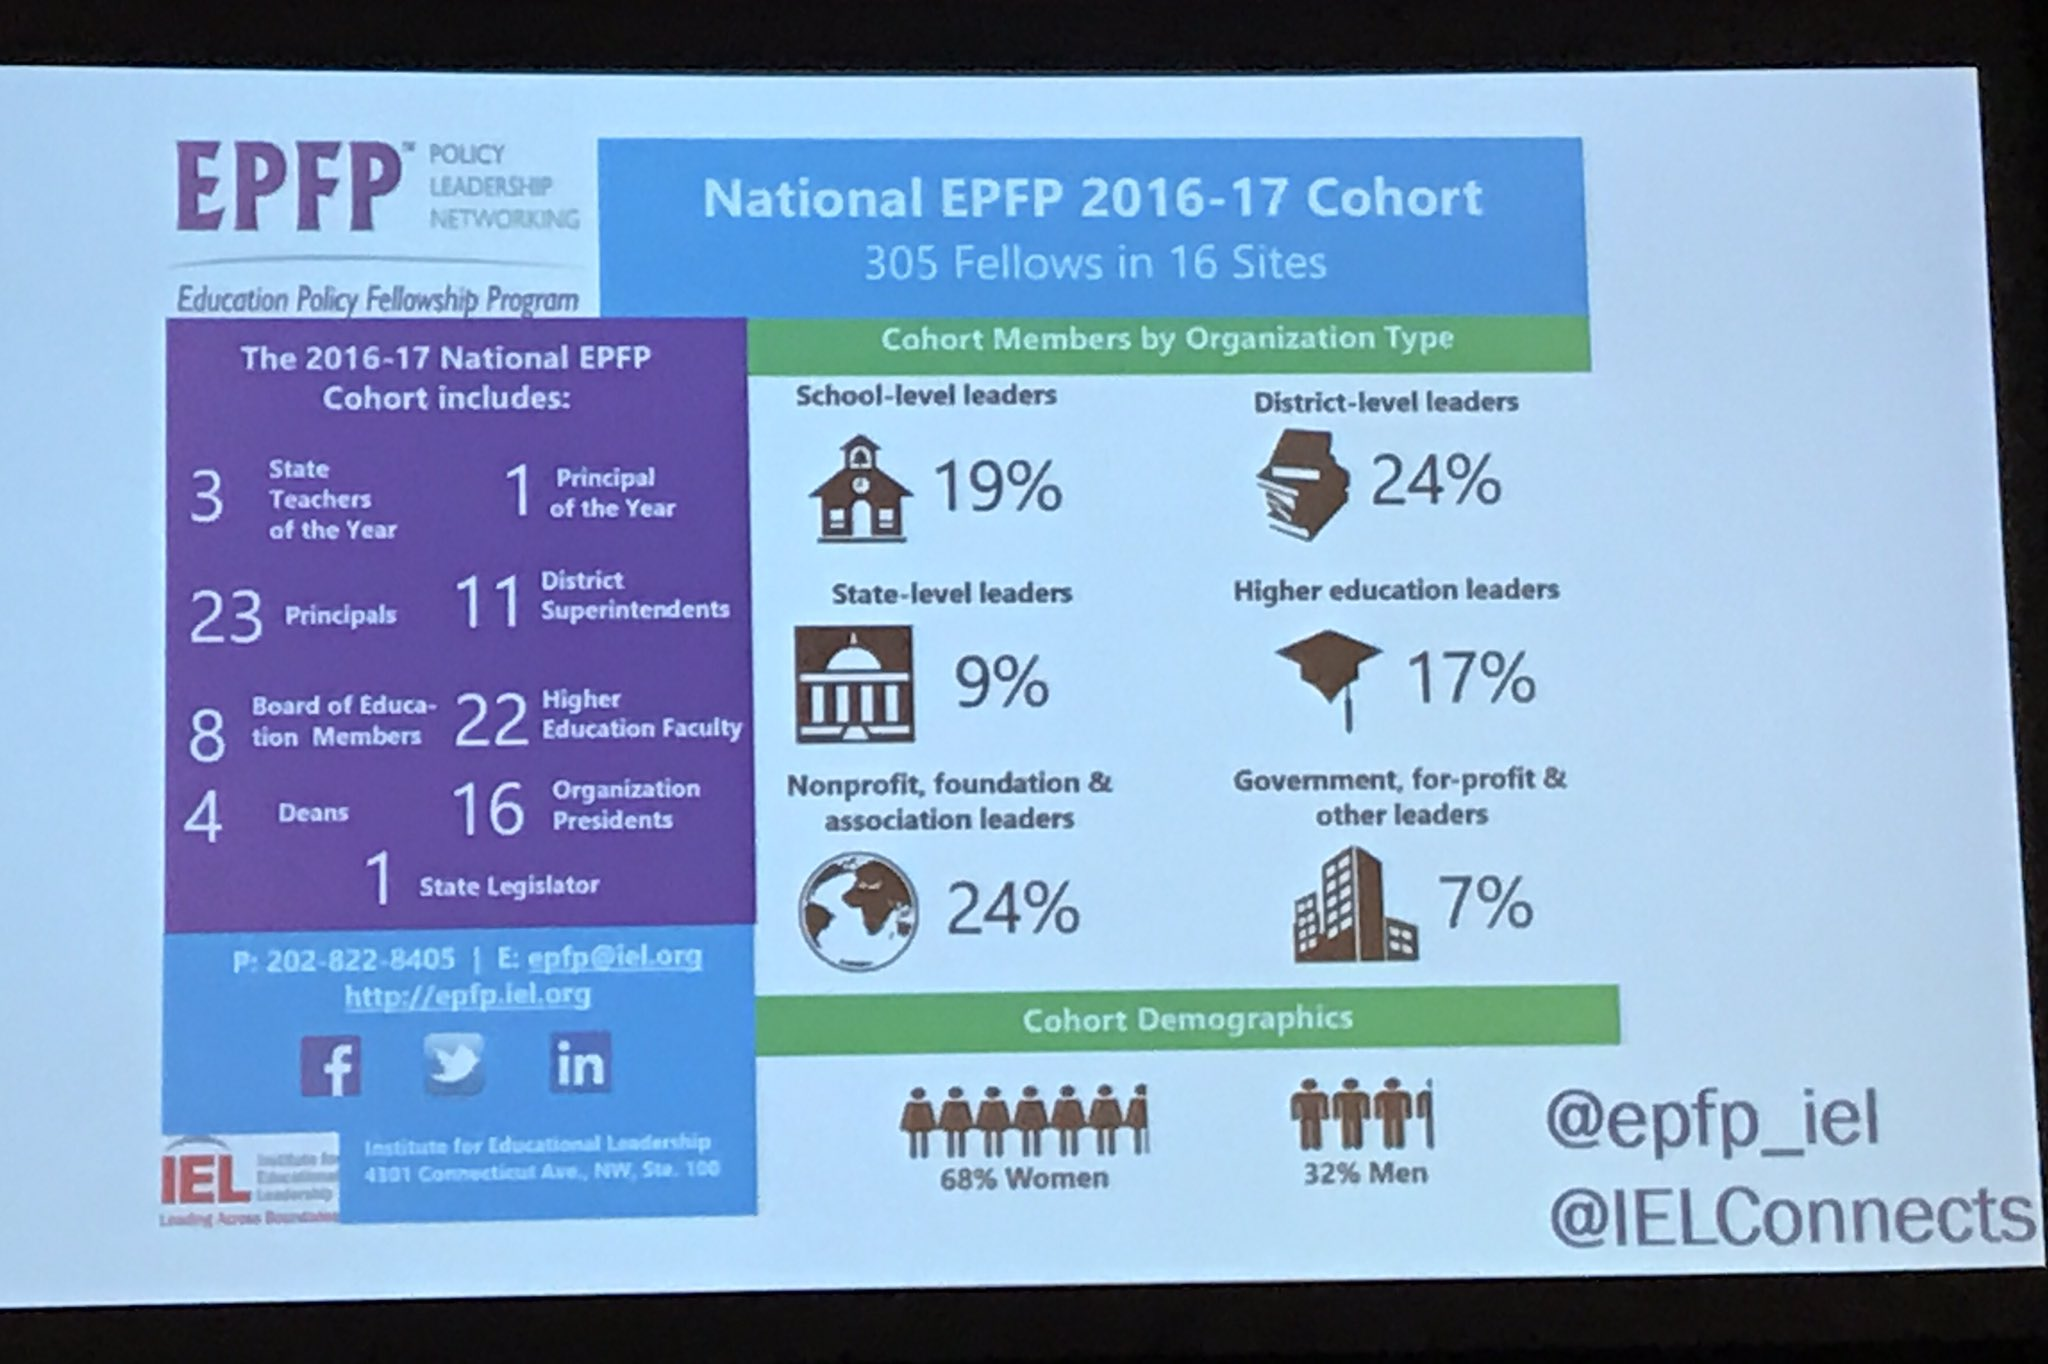 The make-up of national EPFP fellows for 2016-17! #epfpWPS @epfp_iel @IELconnects https://t.co/w9x180rTgx